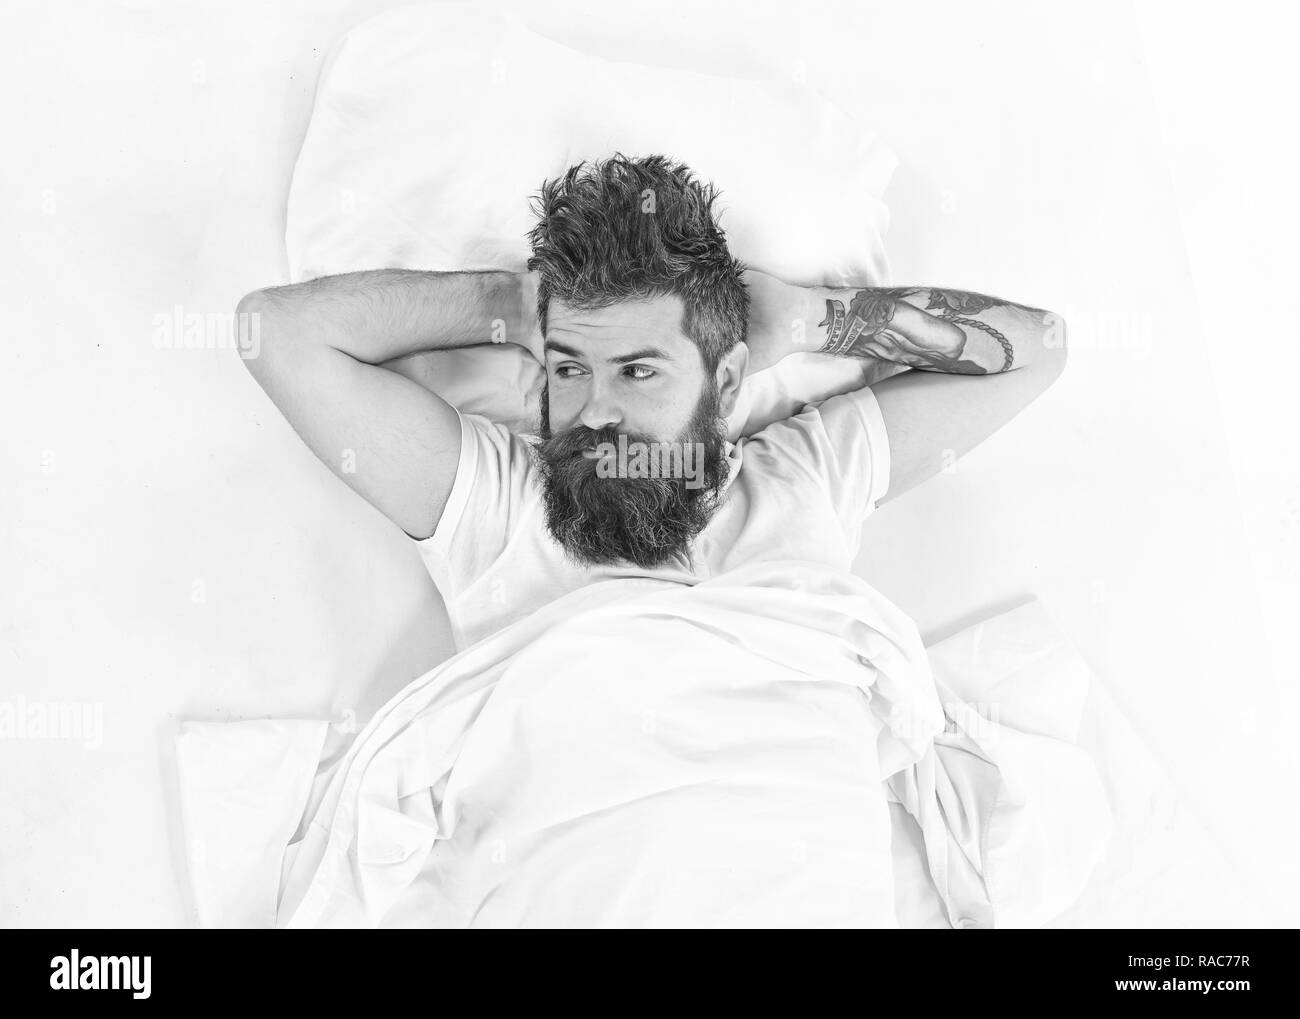 Man with pensive face wake up, lay on bed, put hands behind head, top view. Hipster with beard, mustache and messy hair relaxing. Hangover morning concept. Man relax and having rest, white background. - Stock Image